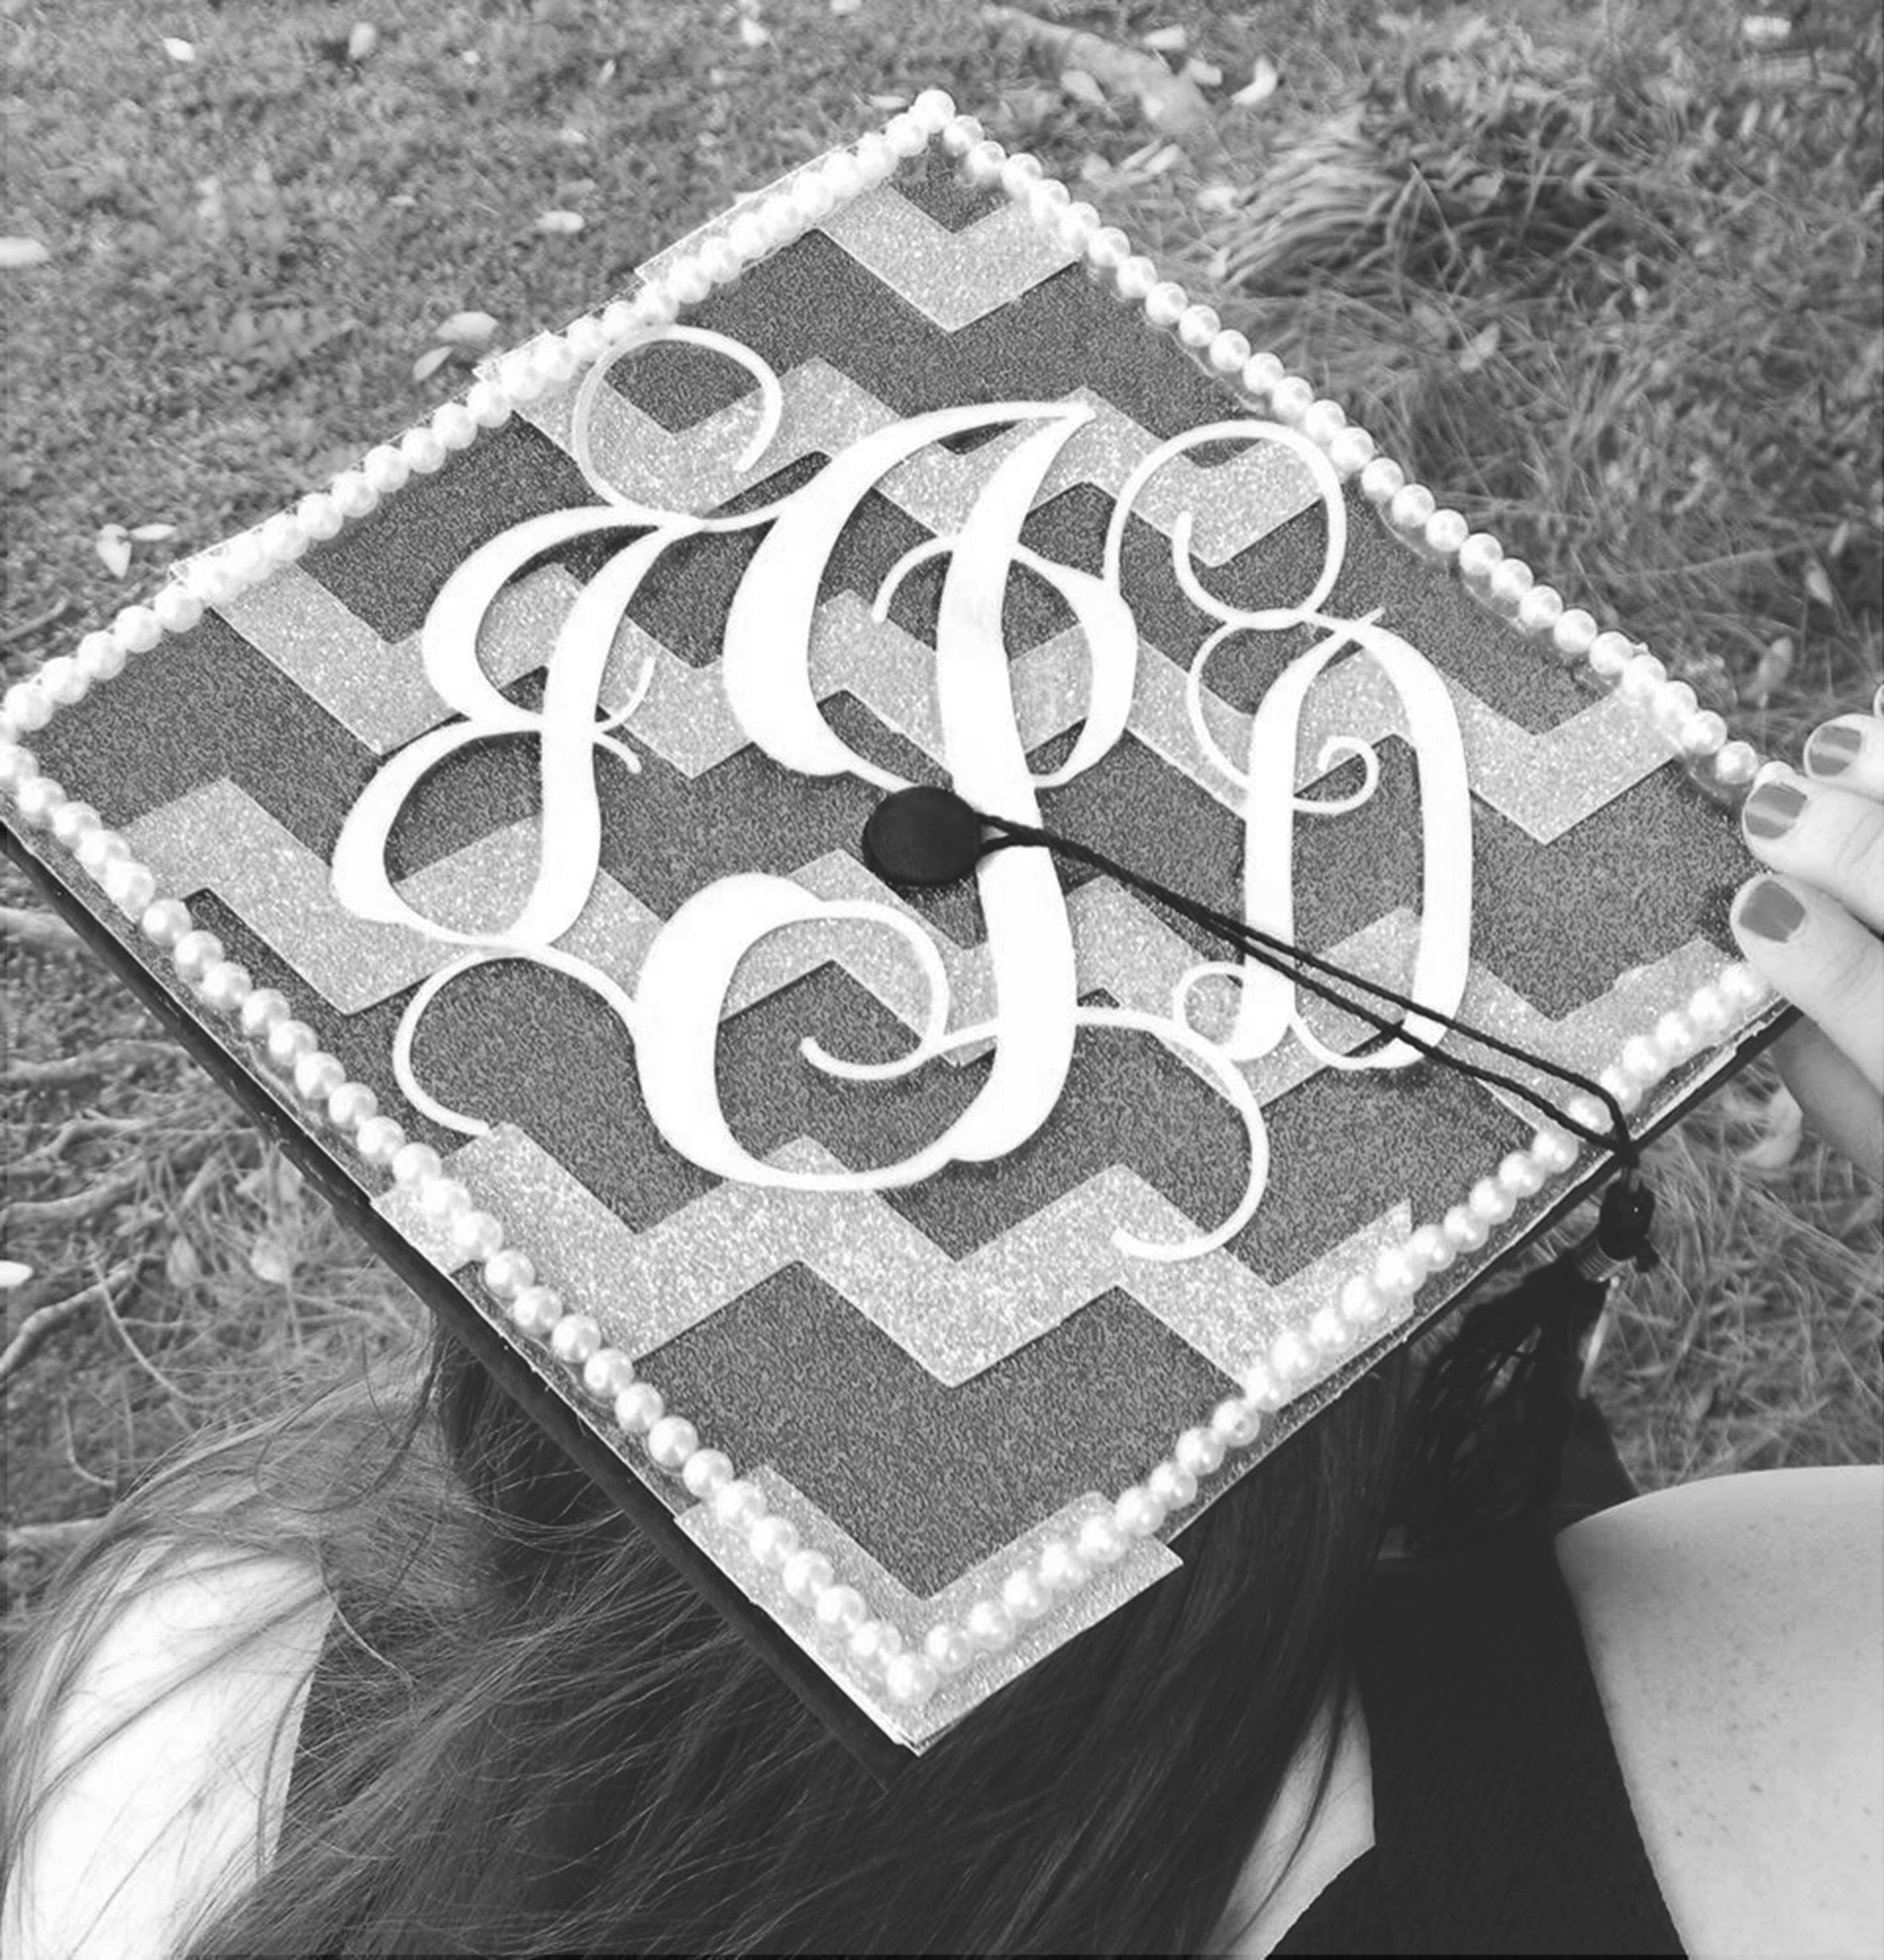 Graduation cap (edited)